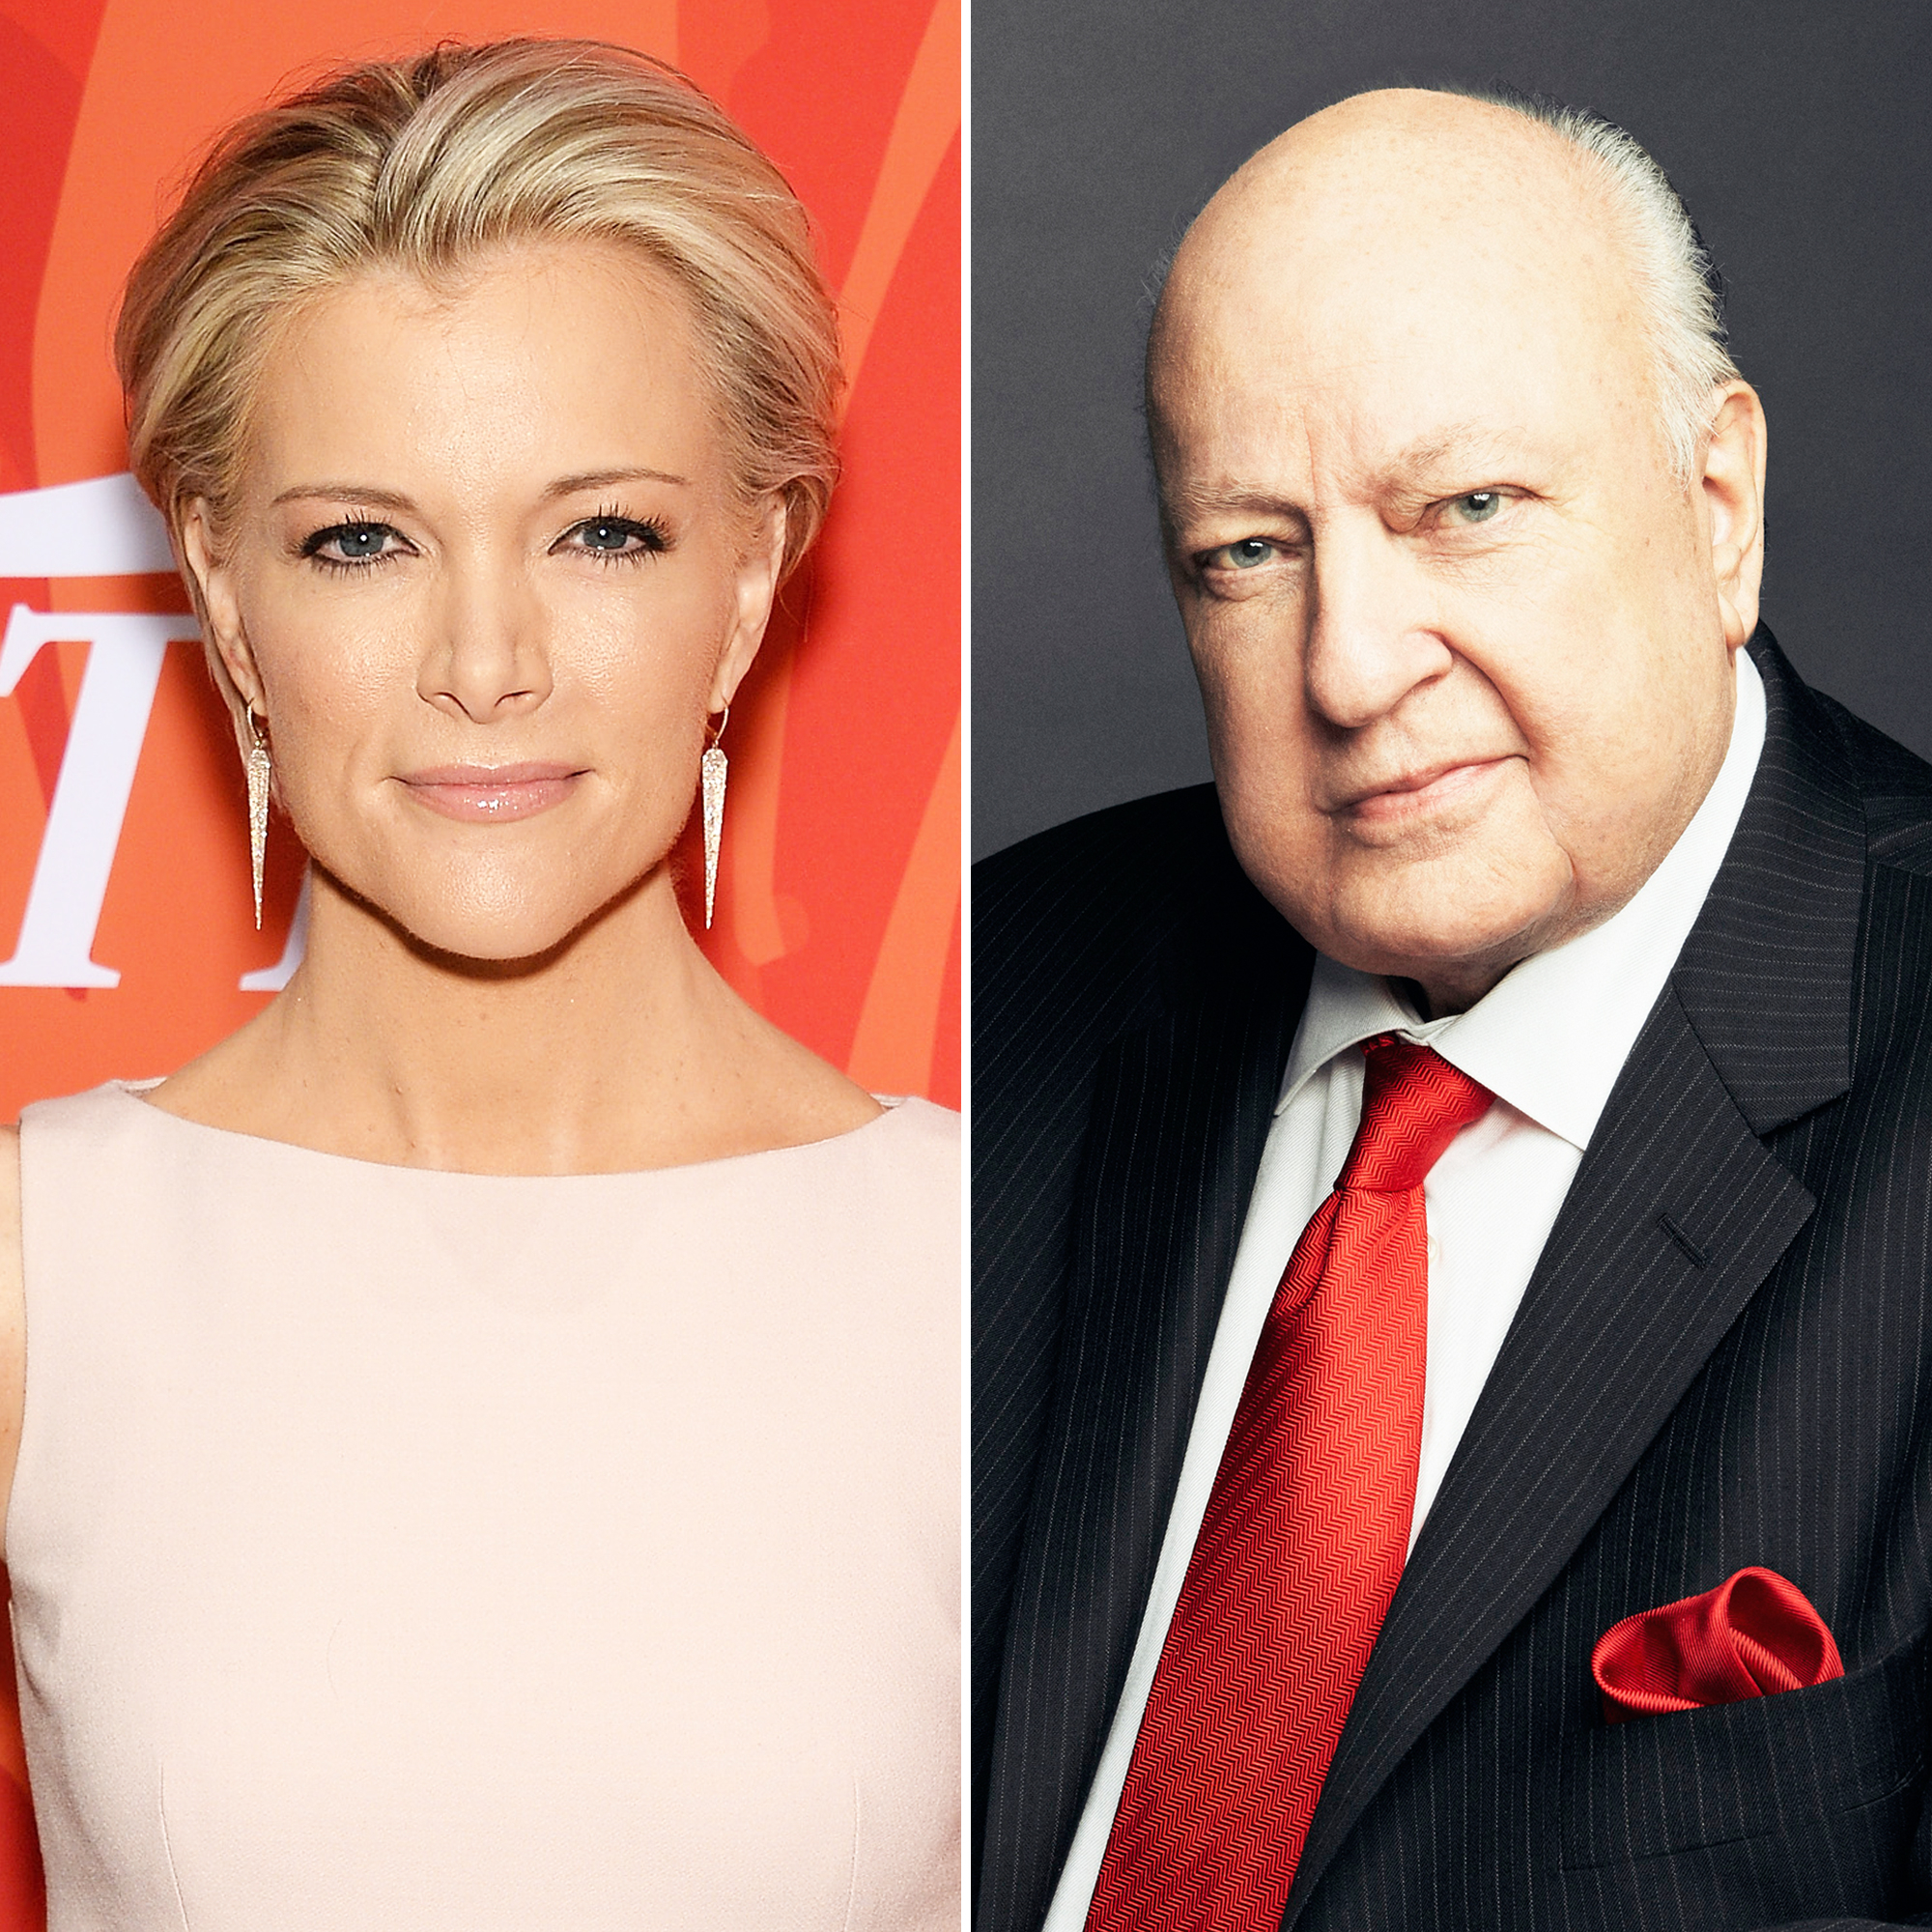 Megyn Kelly Claims Roger Ailes Tried To Kiss Her Three Times